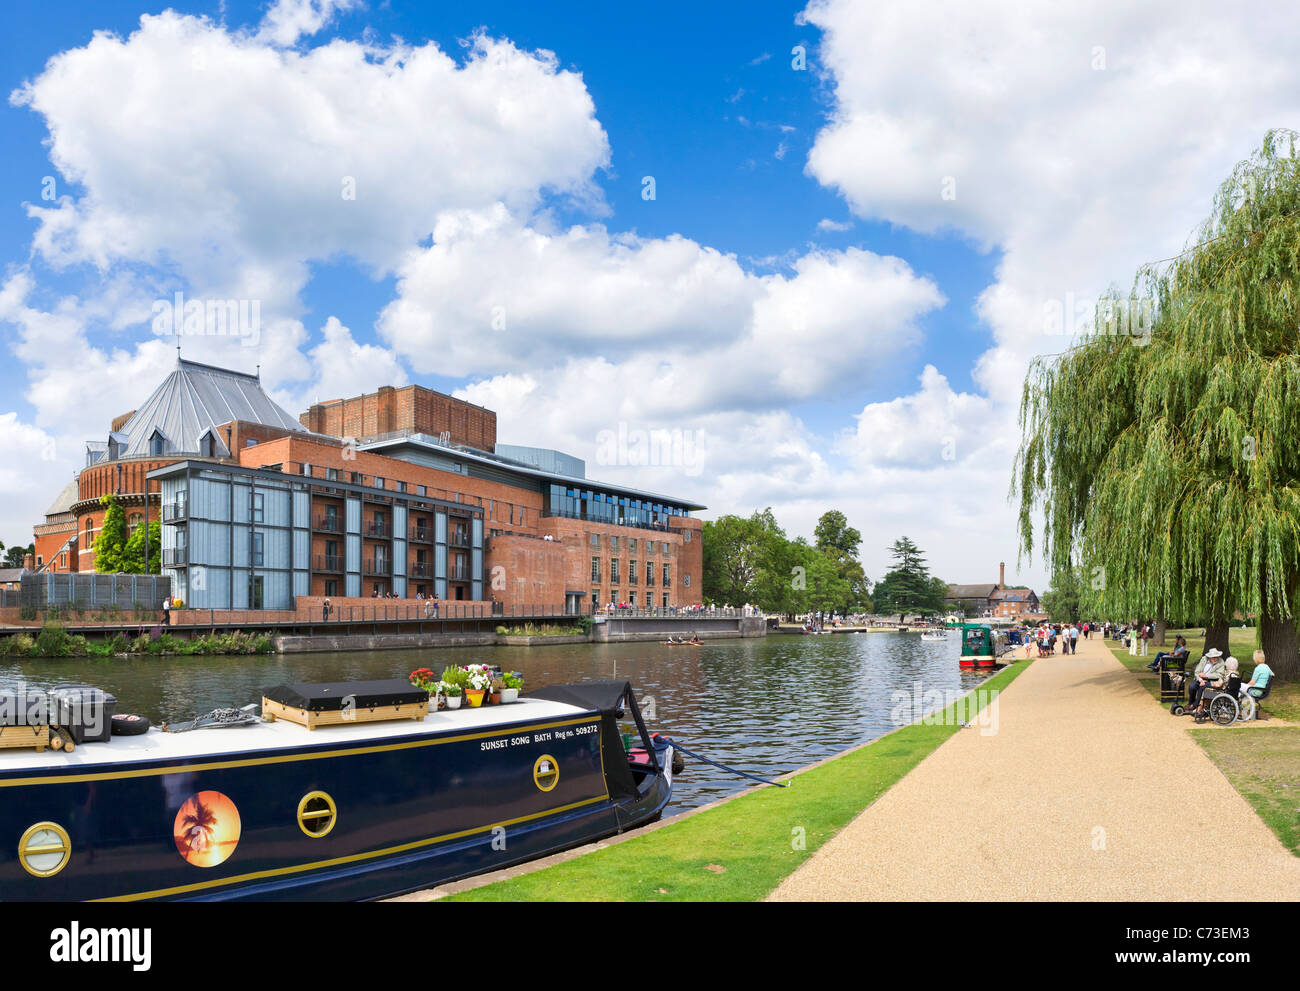 The Royal Shakespeare Theatre and Swan Theatre on the River Avon, Stratford-upon-Avon, Warwickshire, England, UK - Stock Image